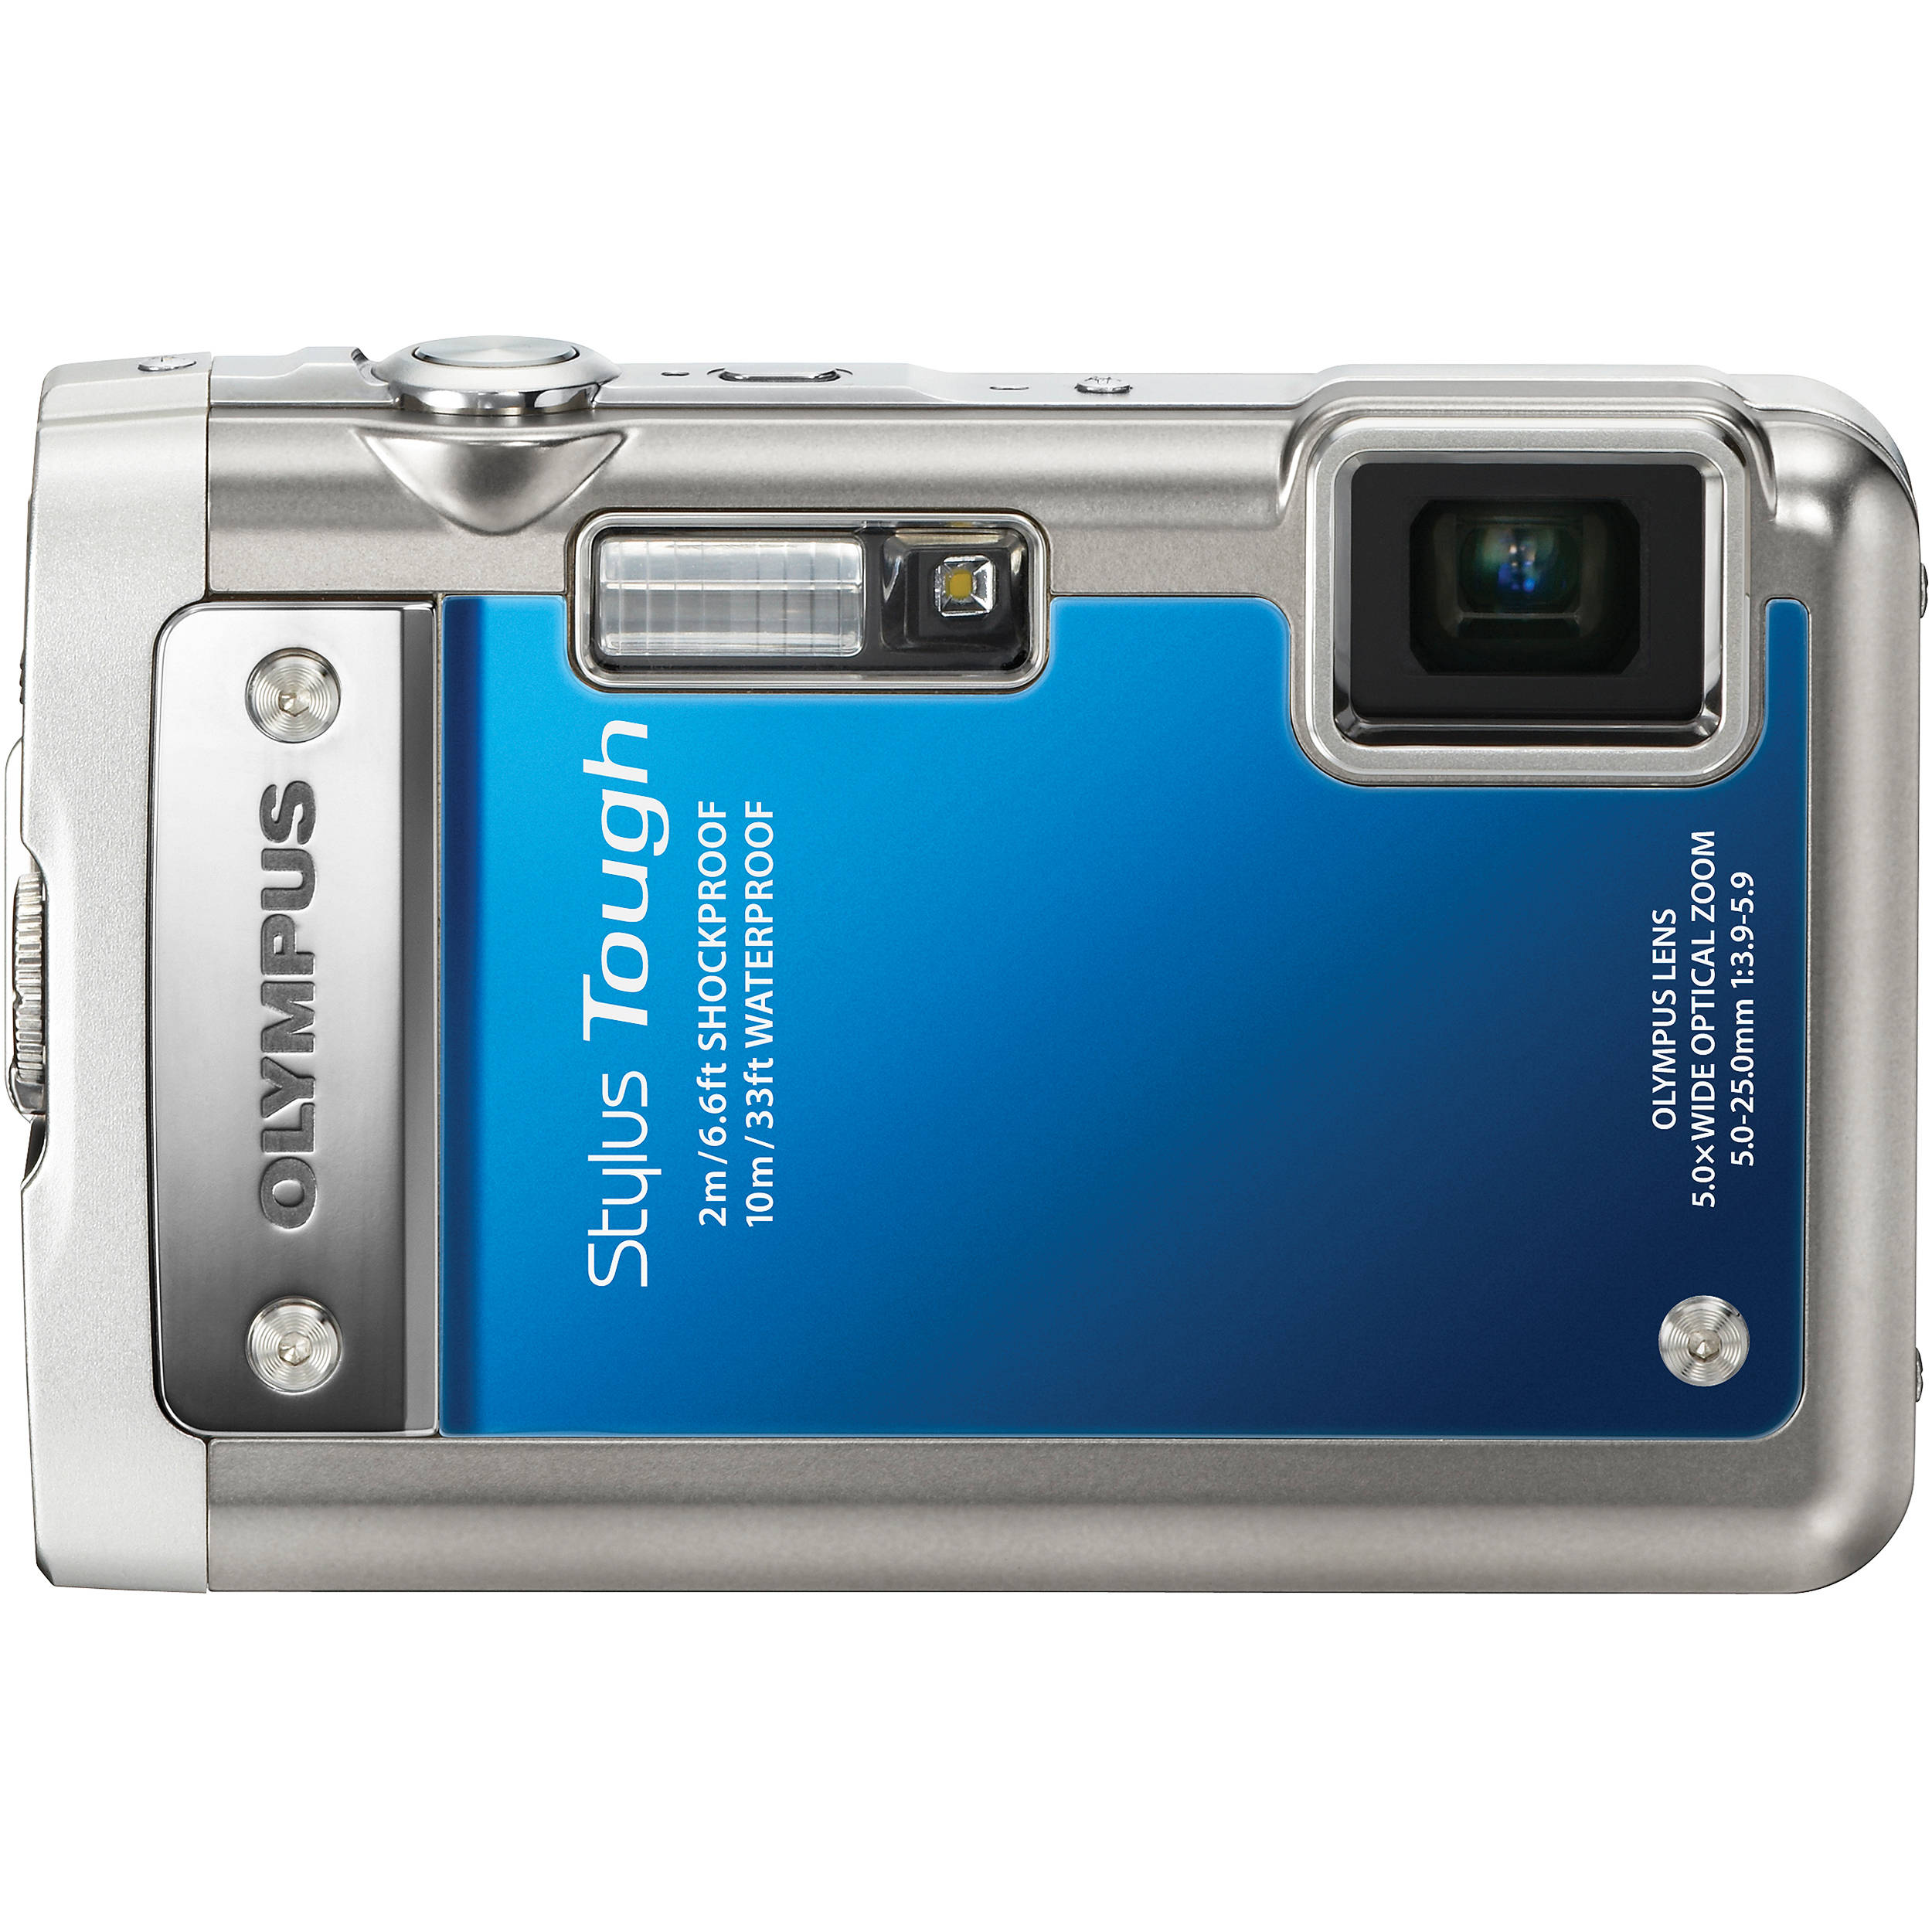 Olympus stylus tough 8010 manual user guide manual that easy to read olympus stylus tough 8010 digital camera blue 227780 b h photo rh bhphotovideo com motorola xtl 5000 fandeluxe Image collections